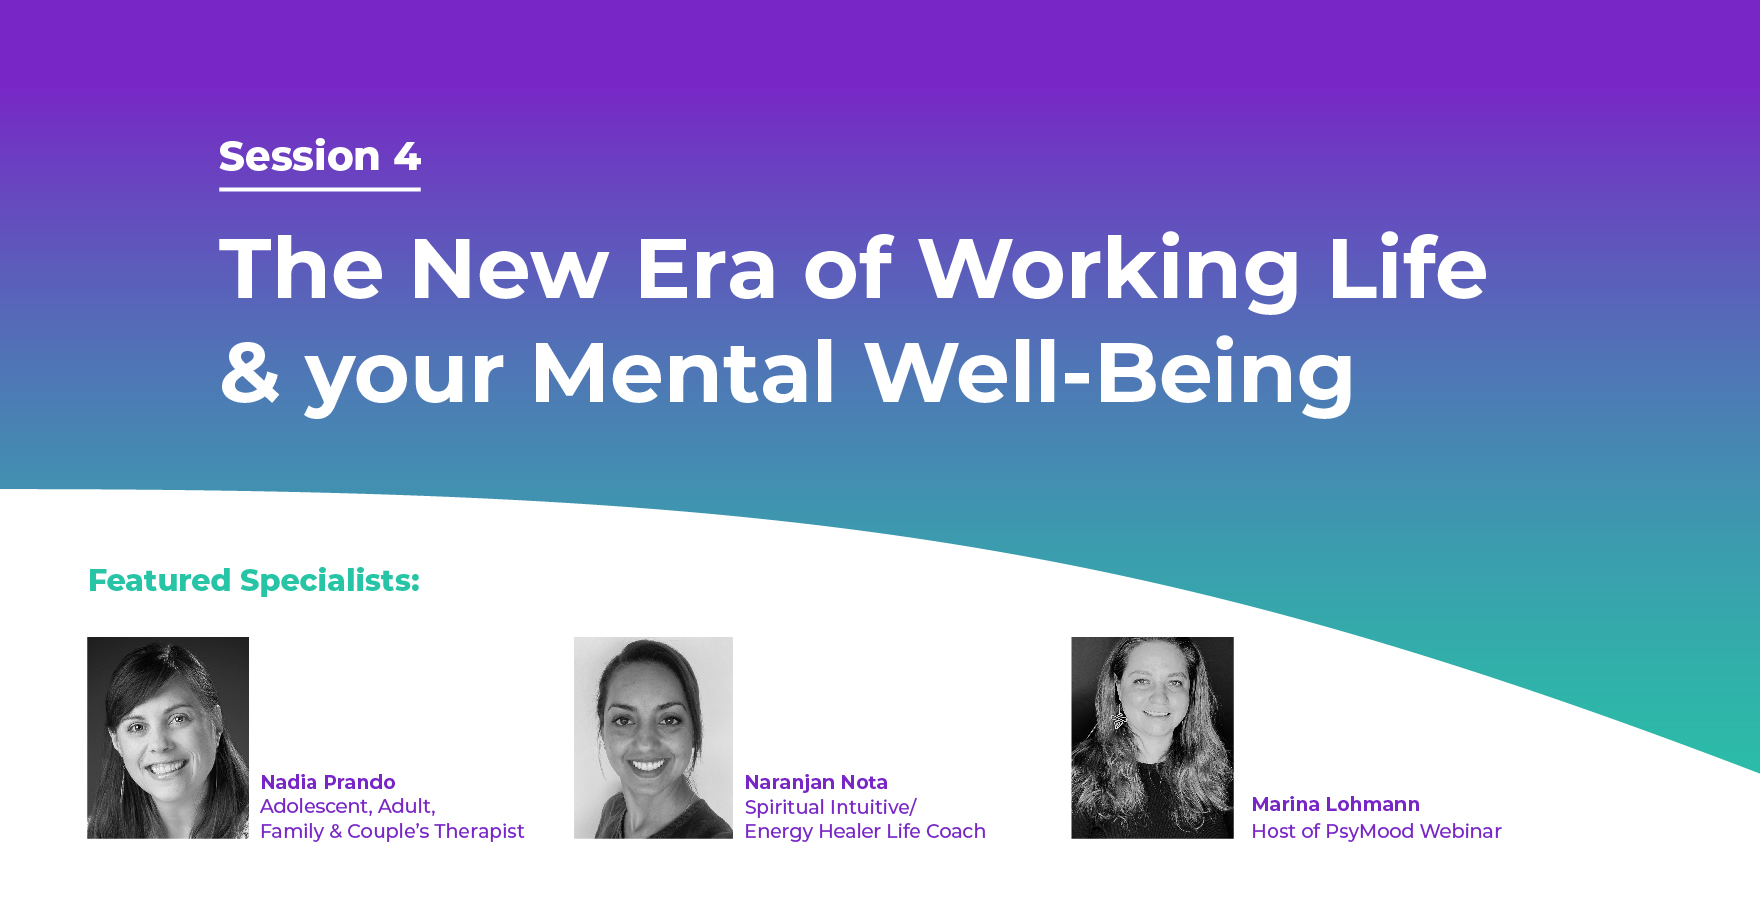 The New Era of Working Life & your Mental Well-Being – Session Highlights